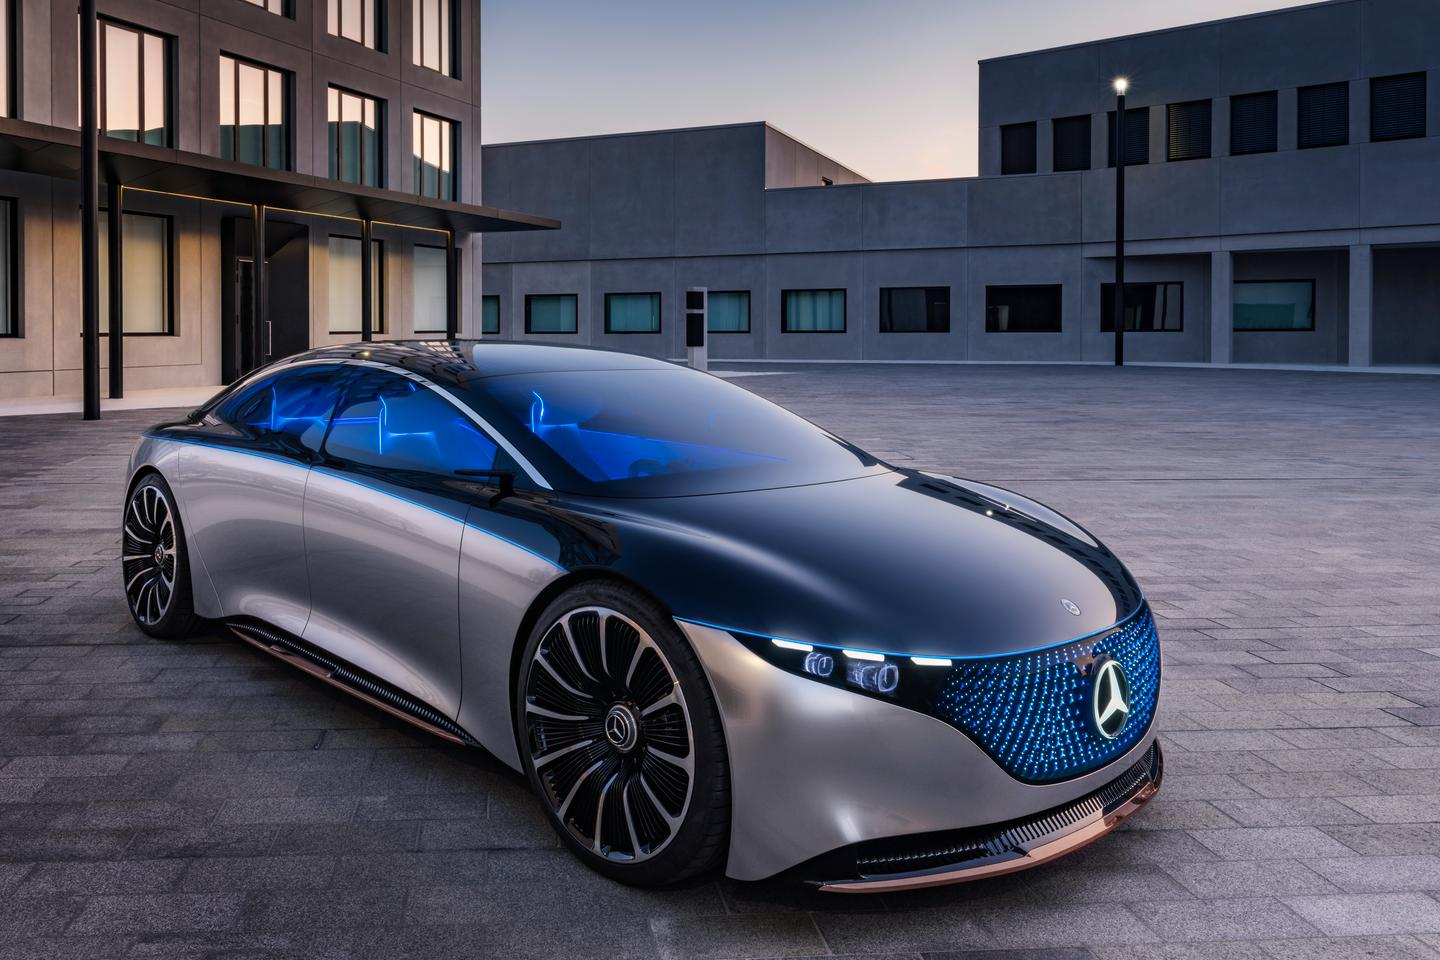 A vision for the future of luxury, in liquid metal, back glass and thousands of 3D LEDs